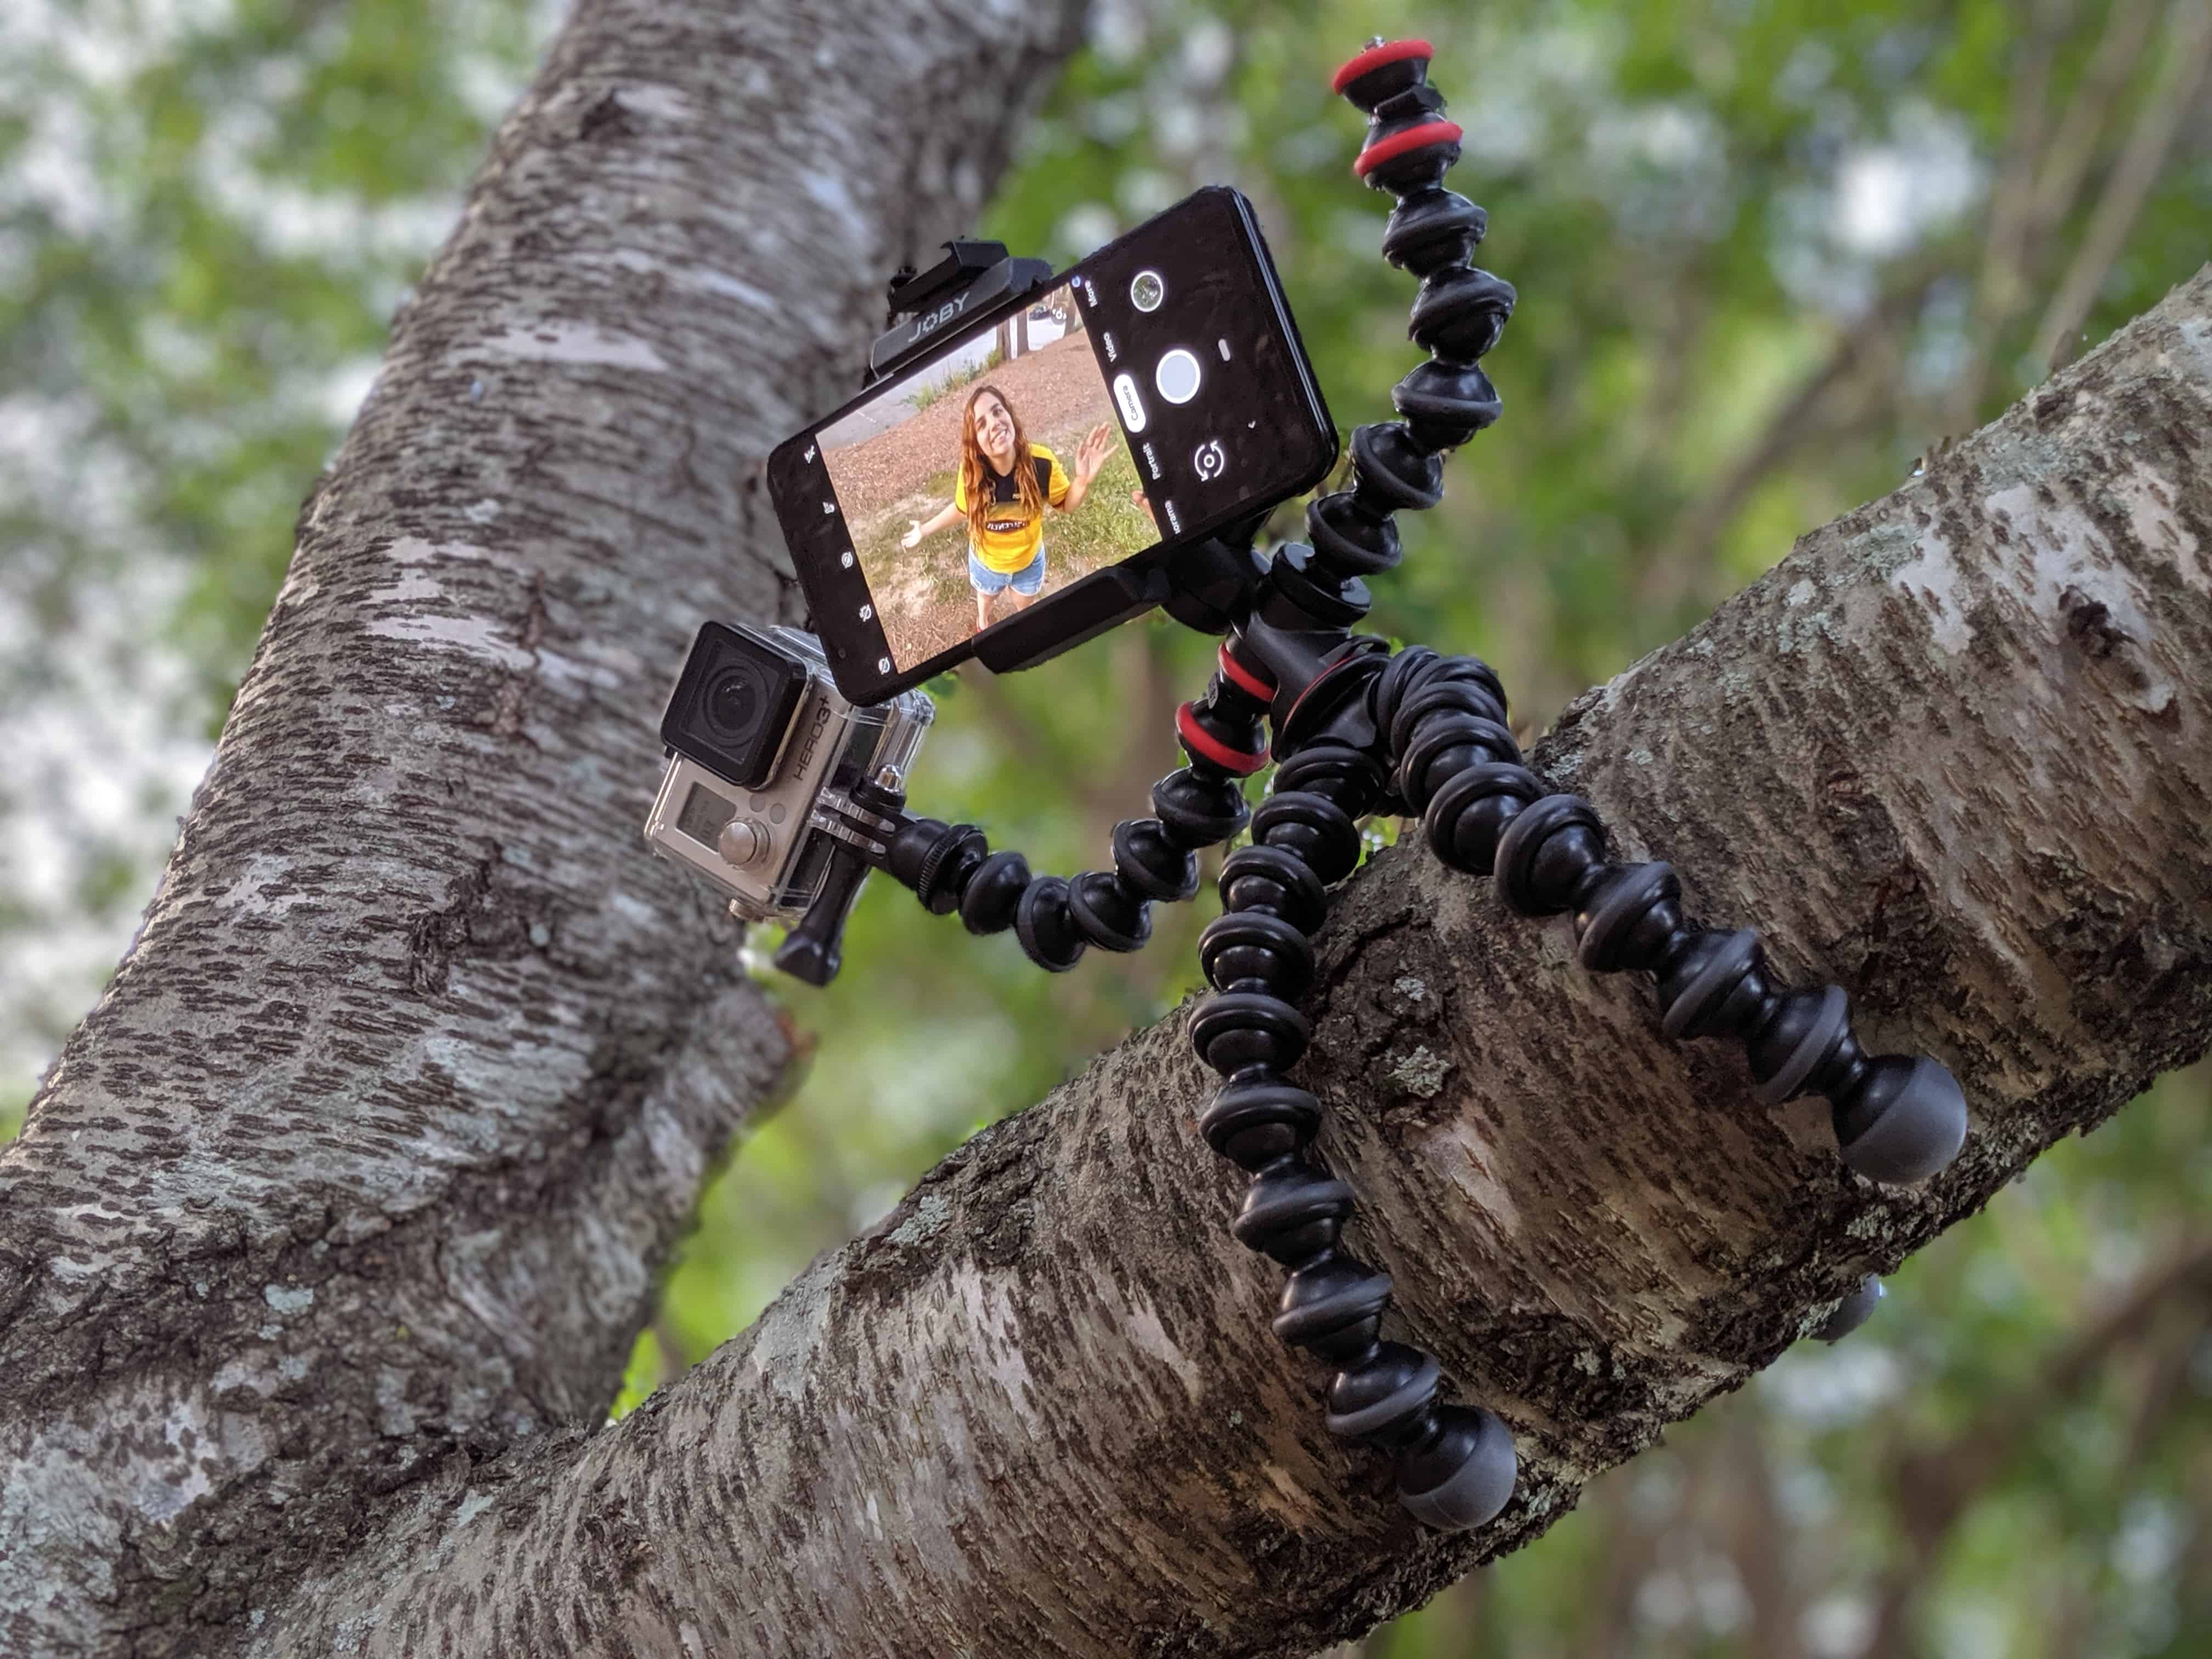 A Complete Review of the Joby Gorillapod Mobile Rig